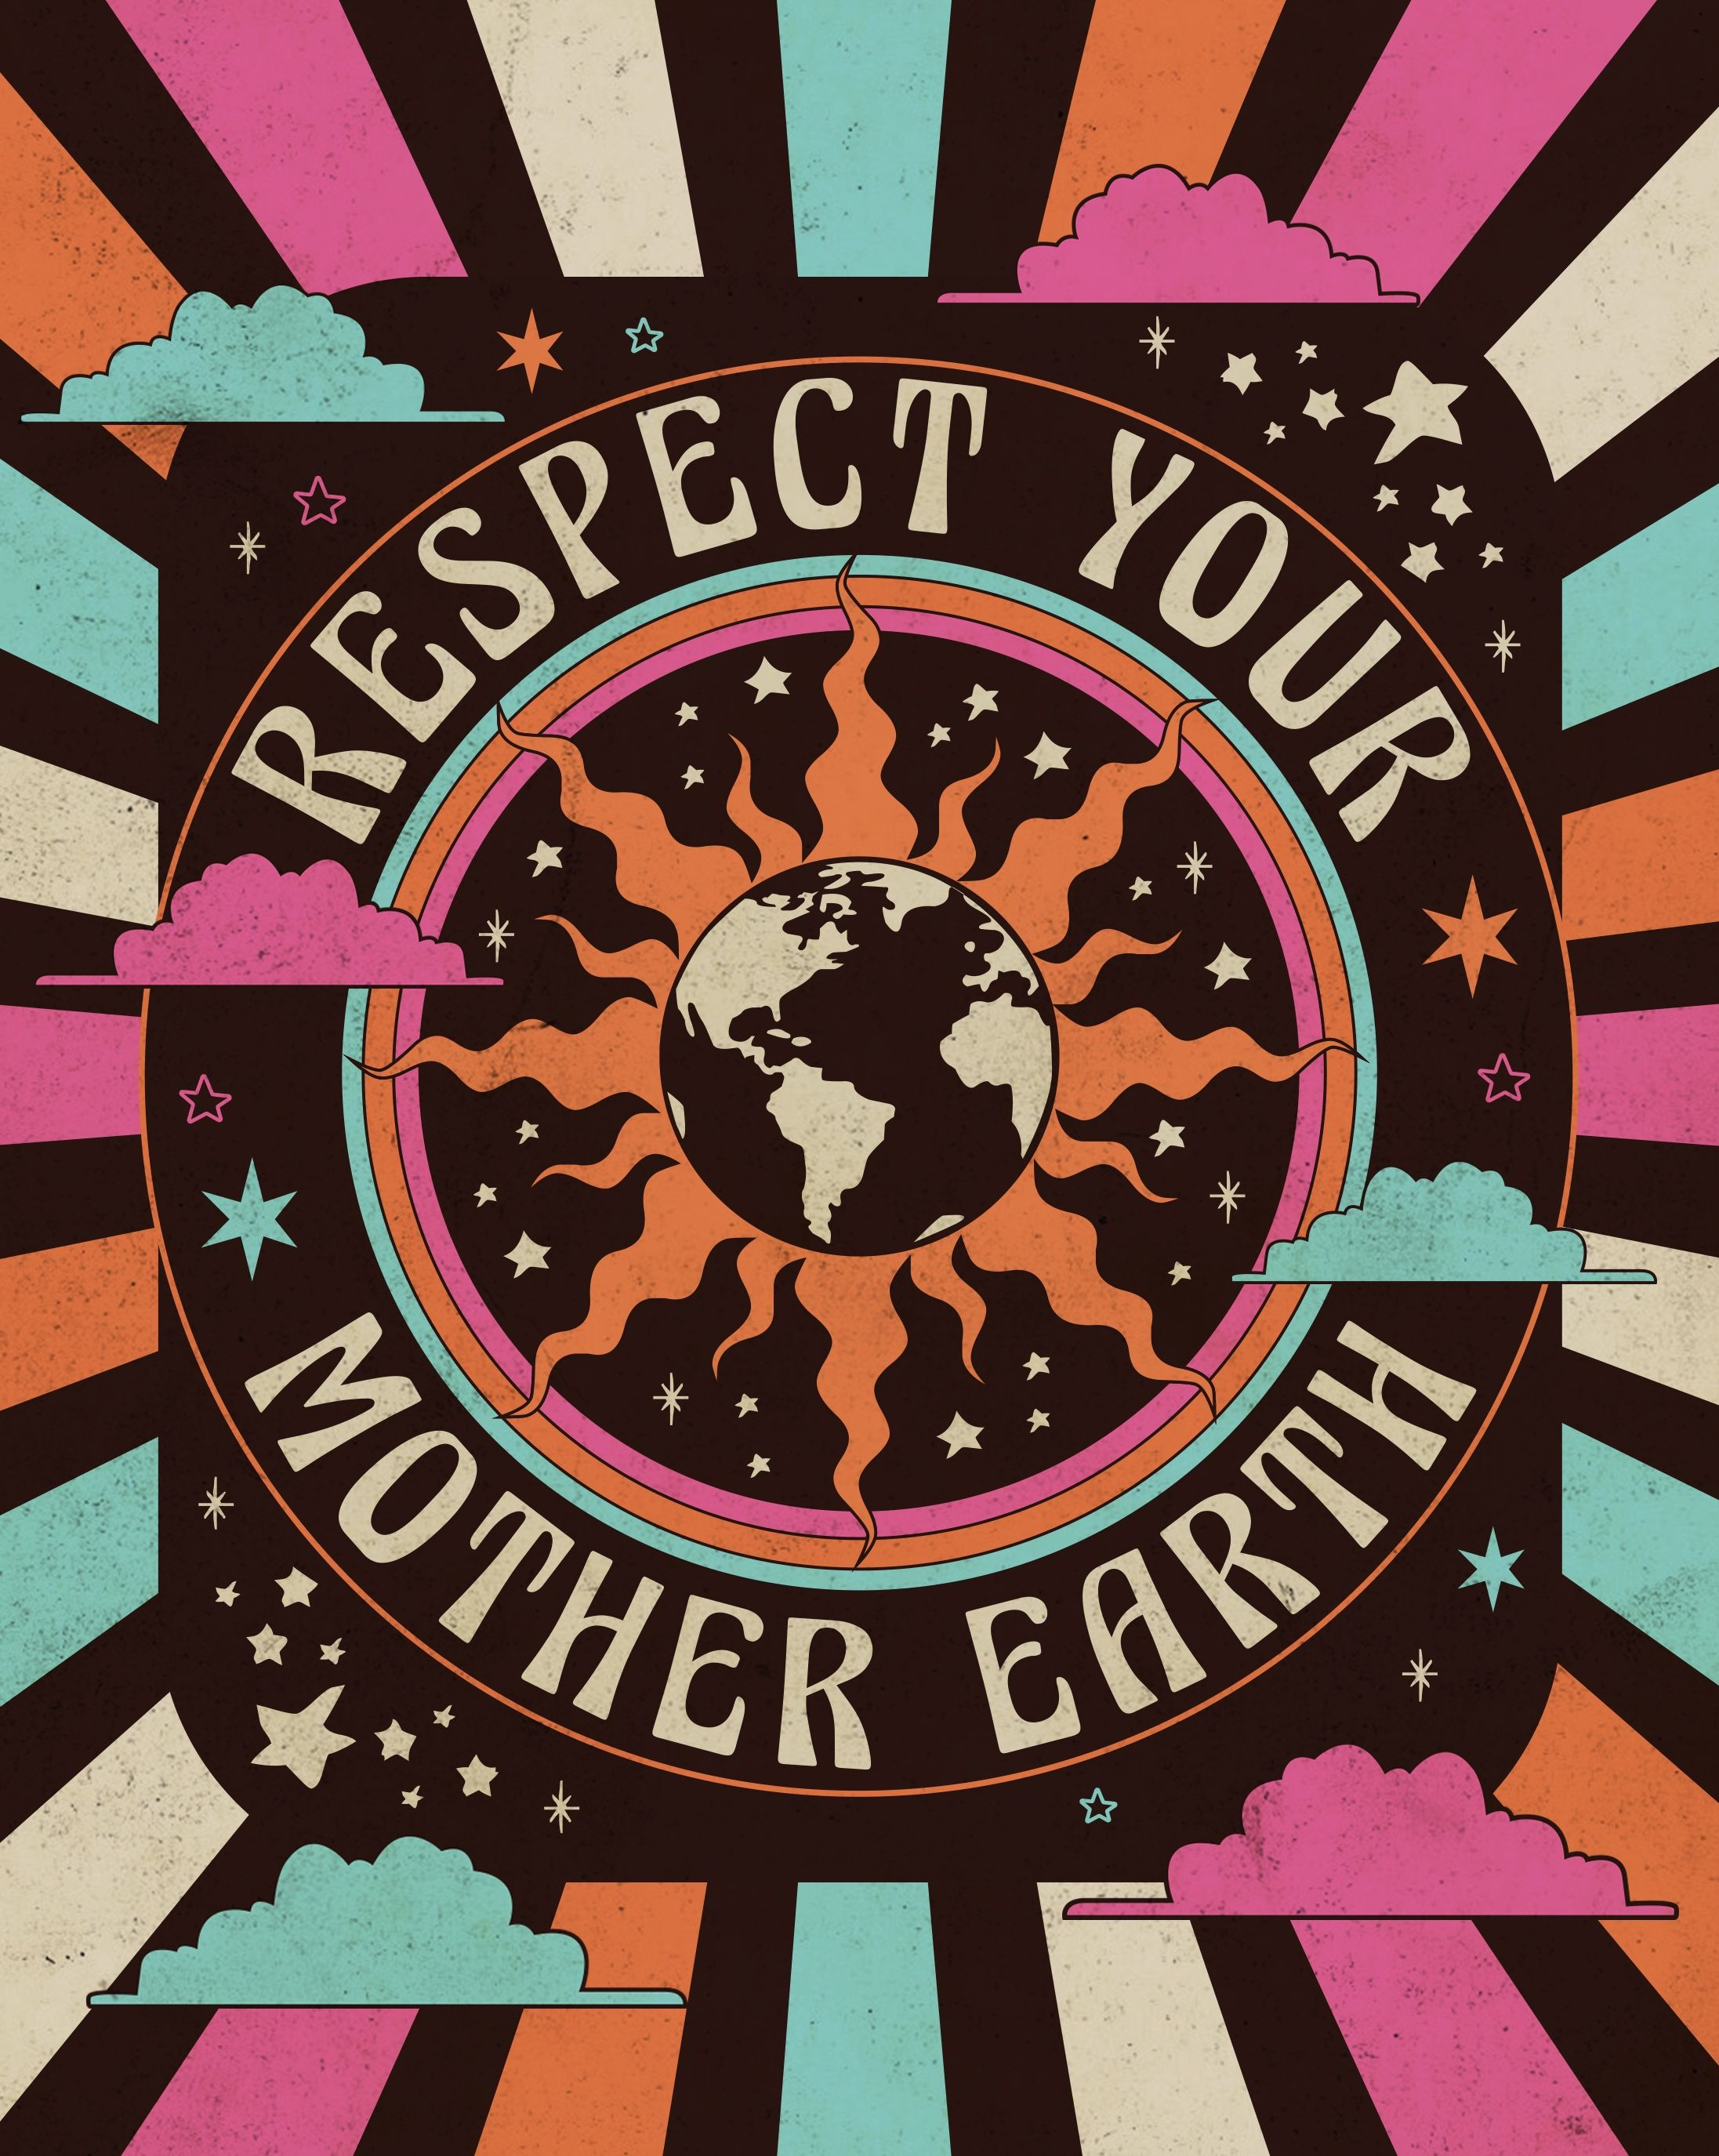 Respect Mother Earth Art Print in 2020 Mother earth art